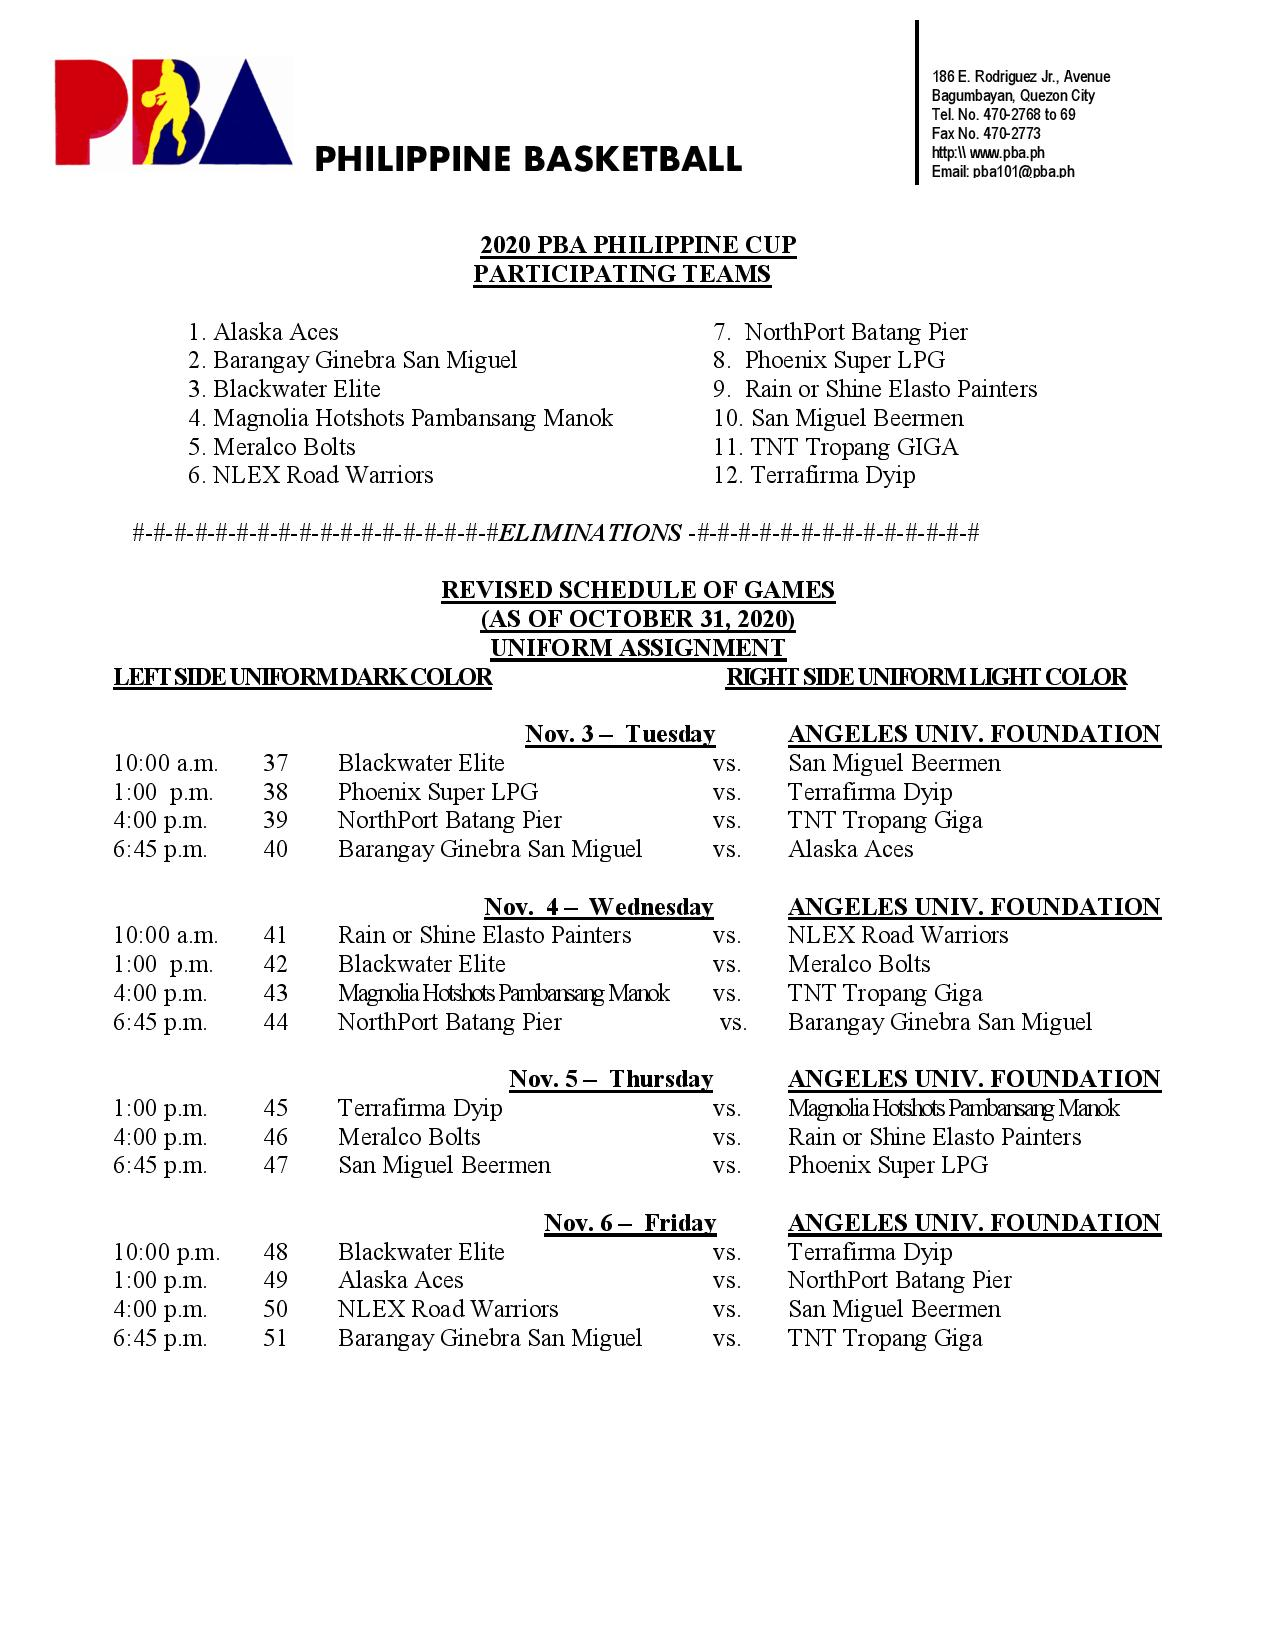 PBA-Season-45-revised-sched-1 Five quadruple-headers added to compressed PBA bubble sched Basketball News PBA  - philippine sports news